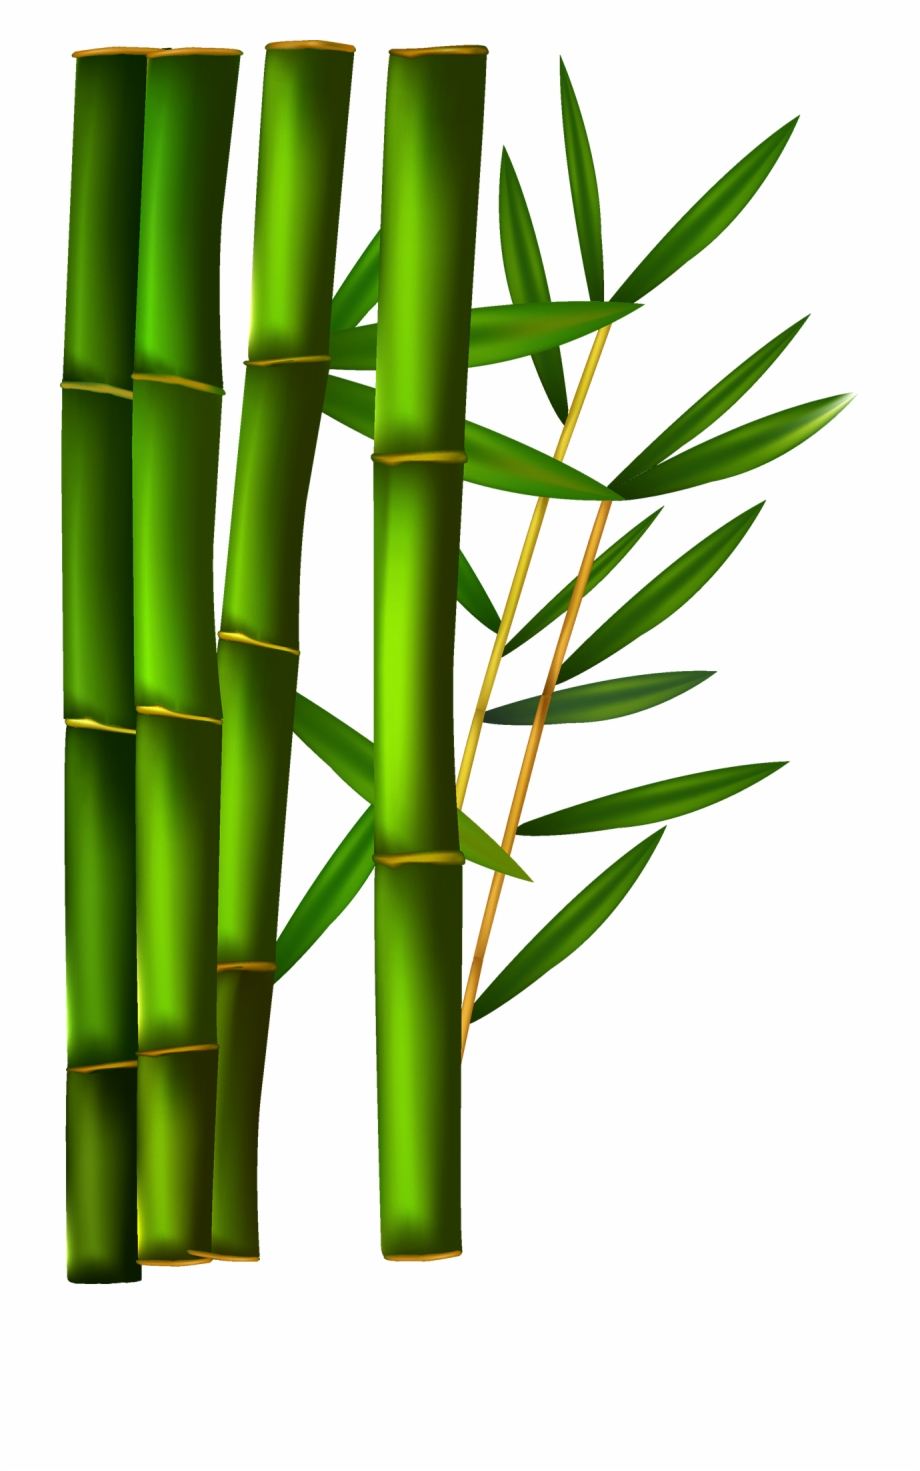 Transparent Background Bamboo Clipart Free PNG Images & Clipart.